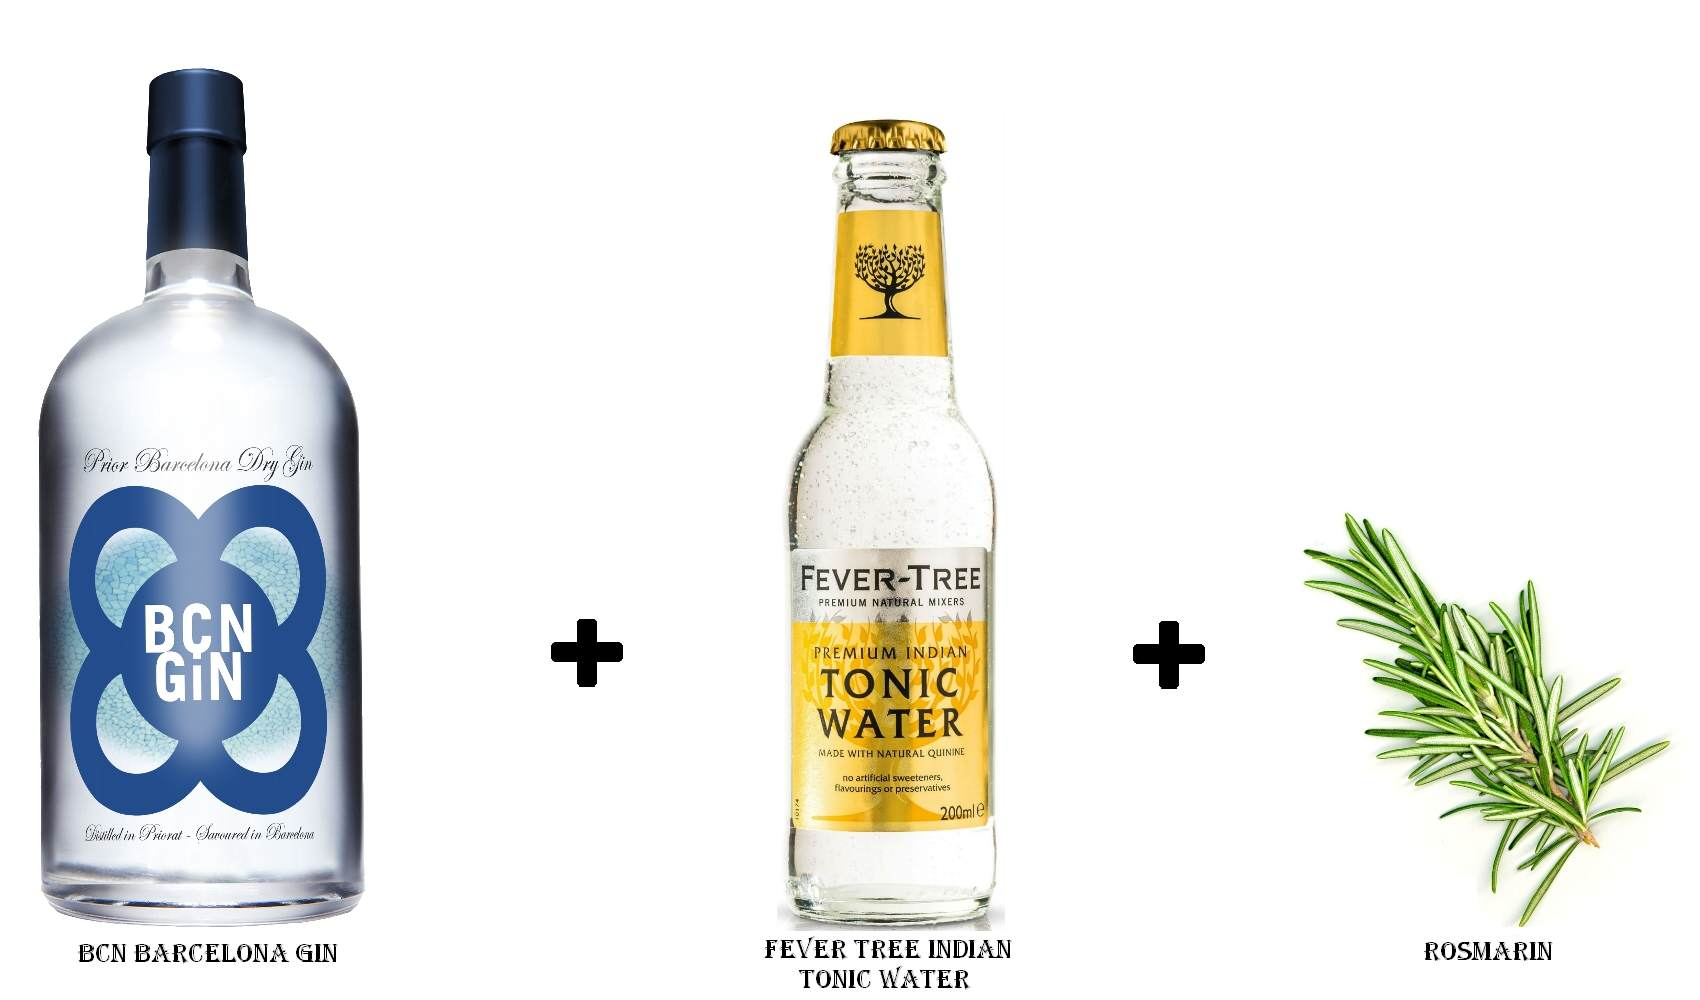 BCN Barcelona Gin + Fever Tree Indian Tonic Water +  Rosmarin